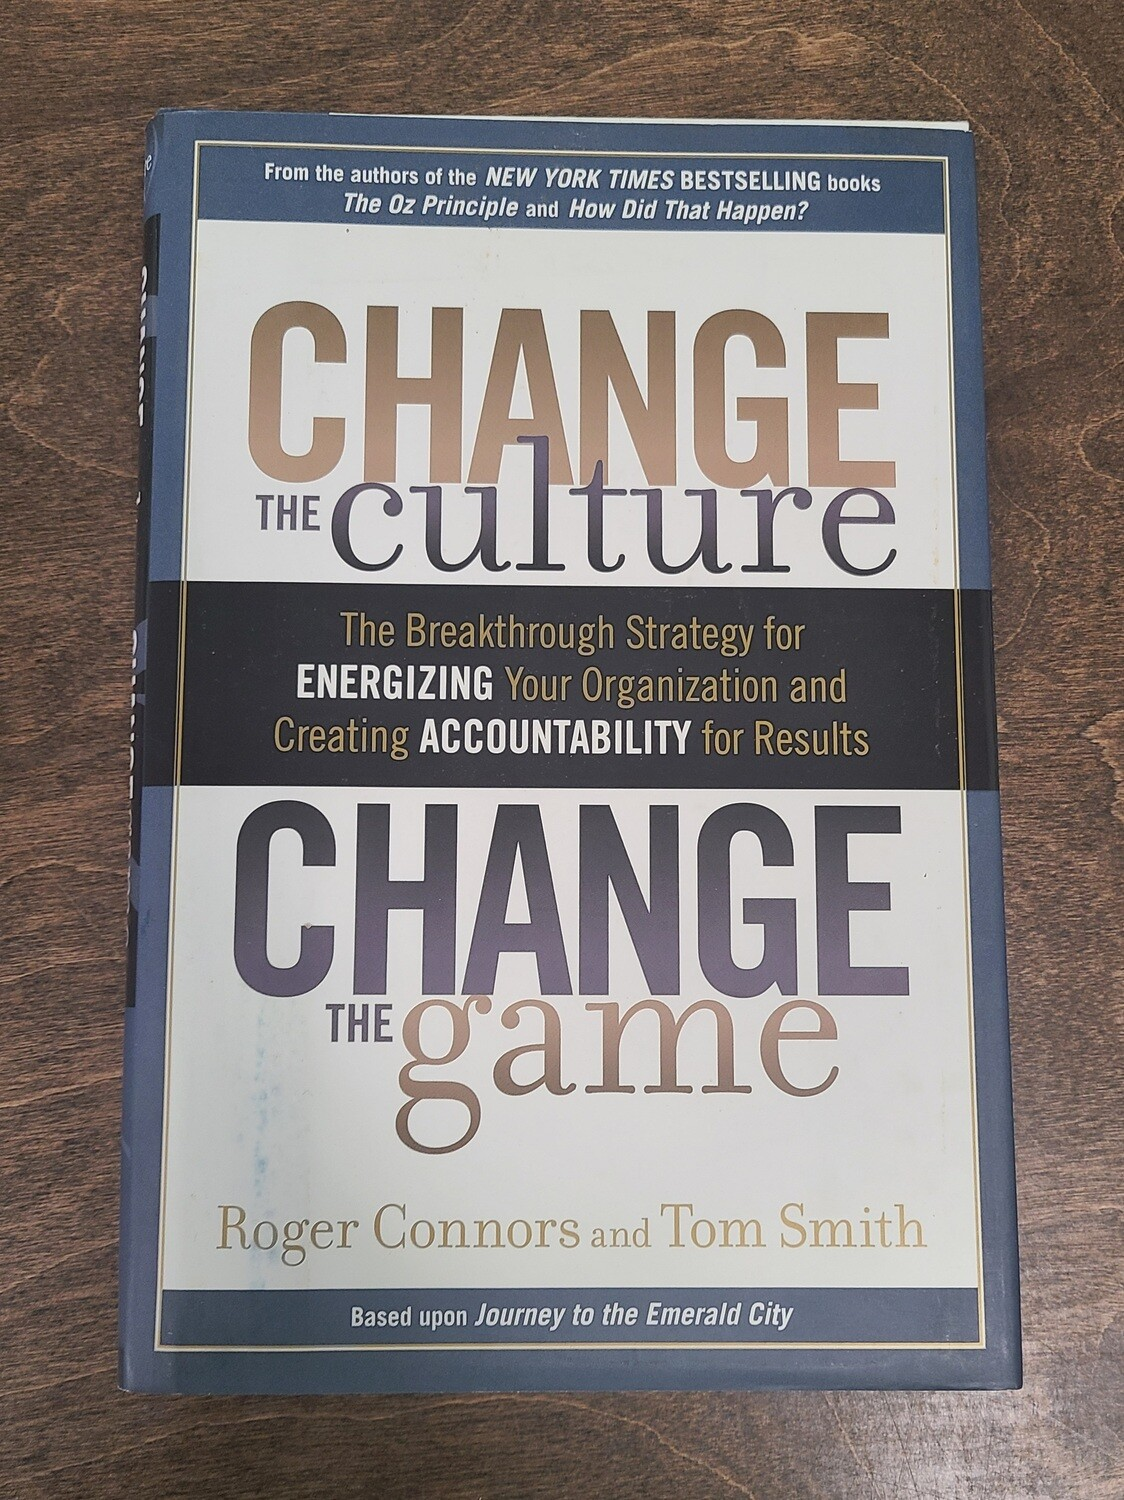 Change the Culture: Change the Game - The Breakthrough Strategy for Energizing Your Organization and Creating Accountability for Results by Roger Connors and Tom Smith